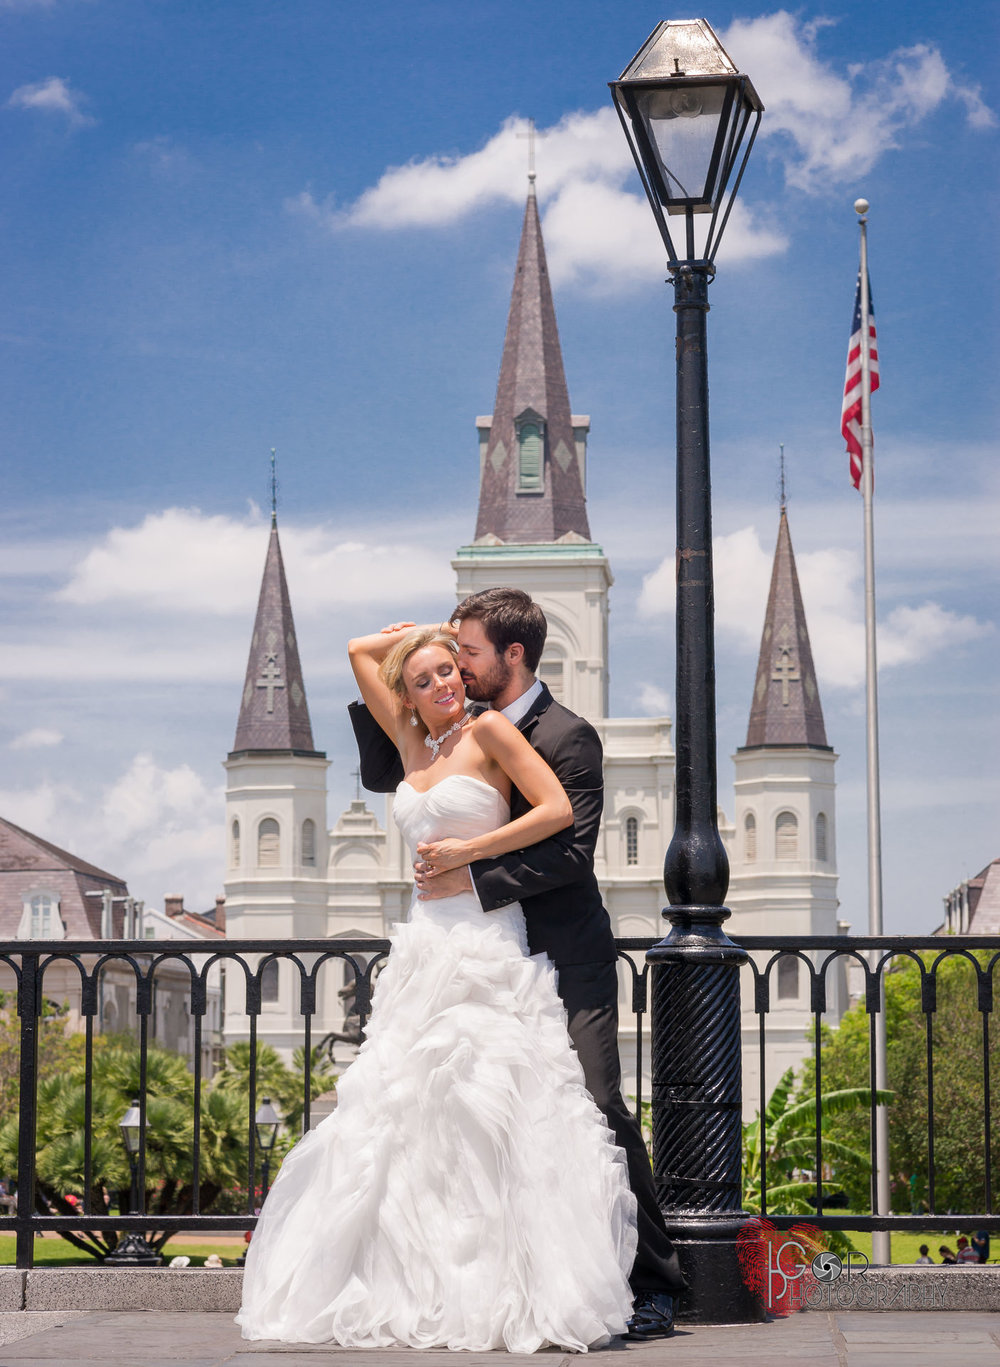 Wedding photography in New Orleans